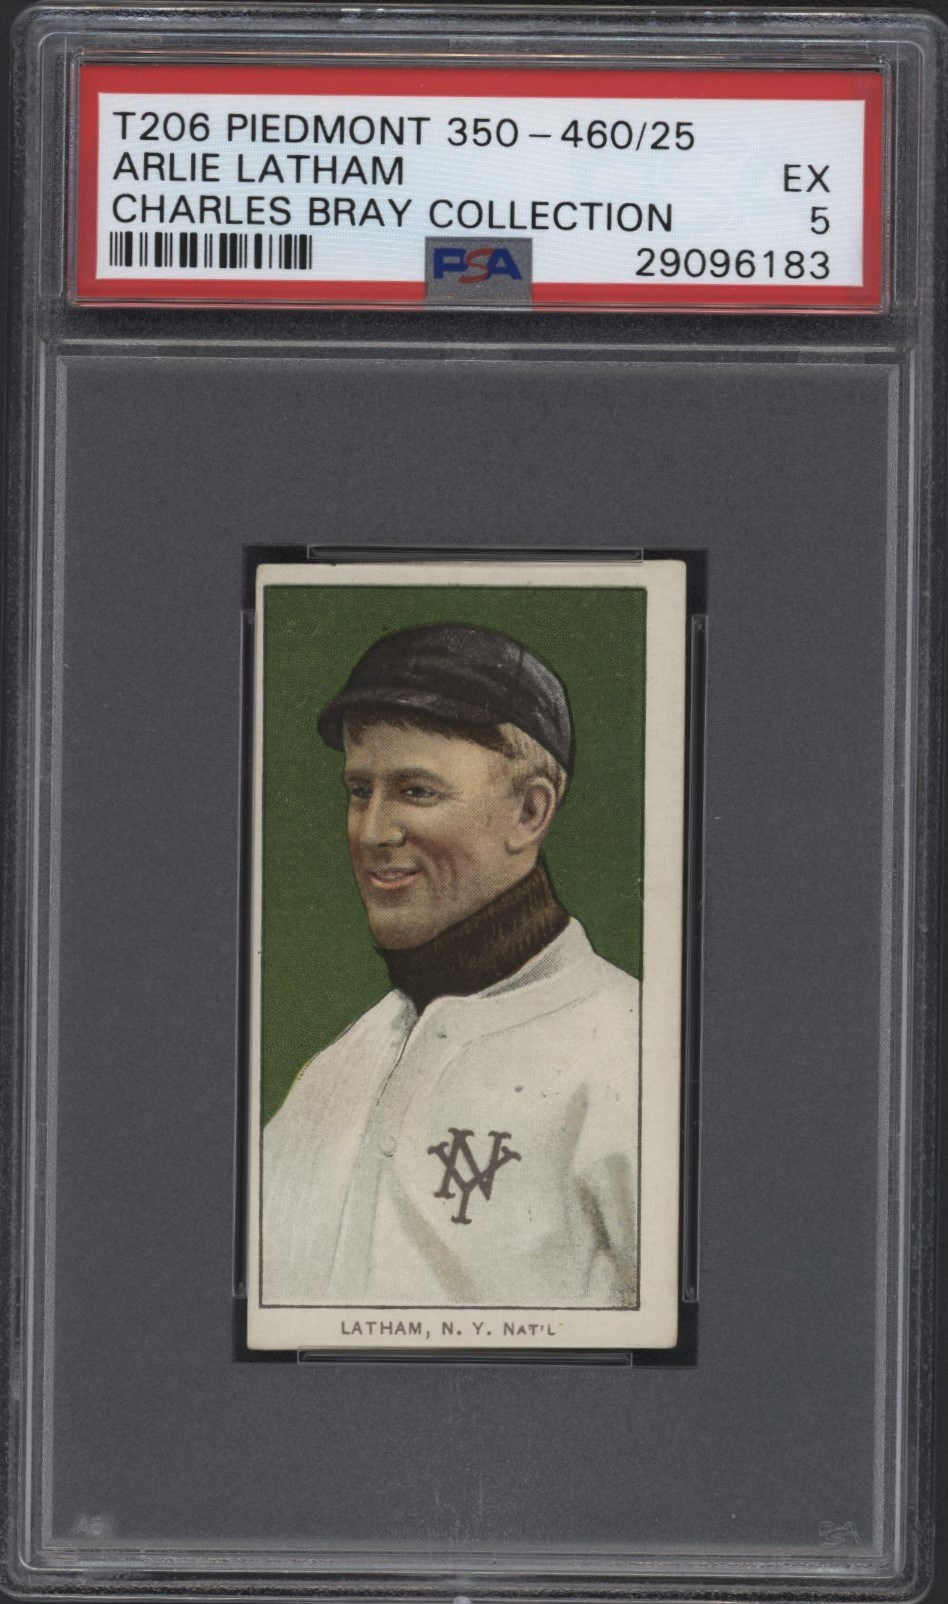 Baseball and Trading Cards - Monthly 07-18